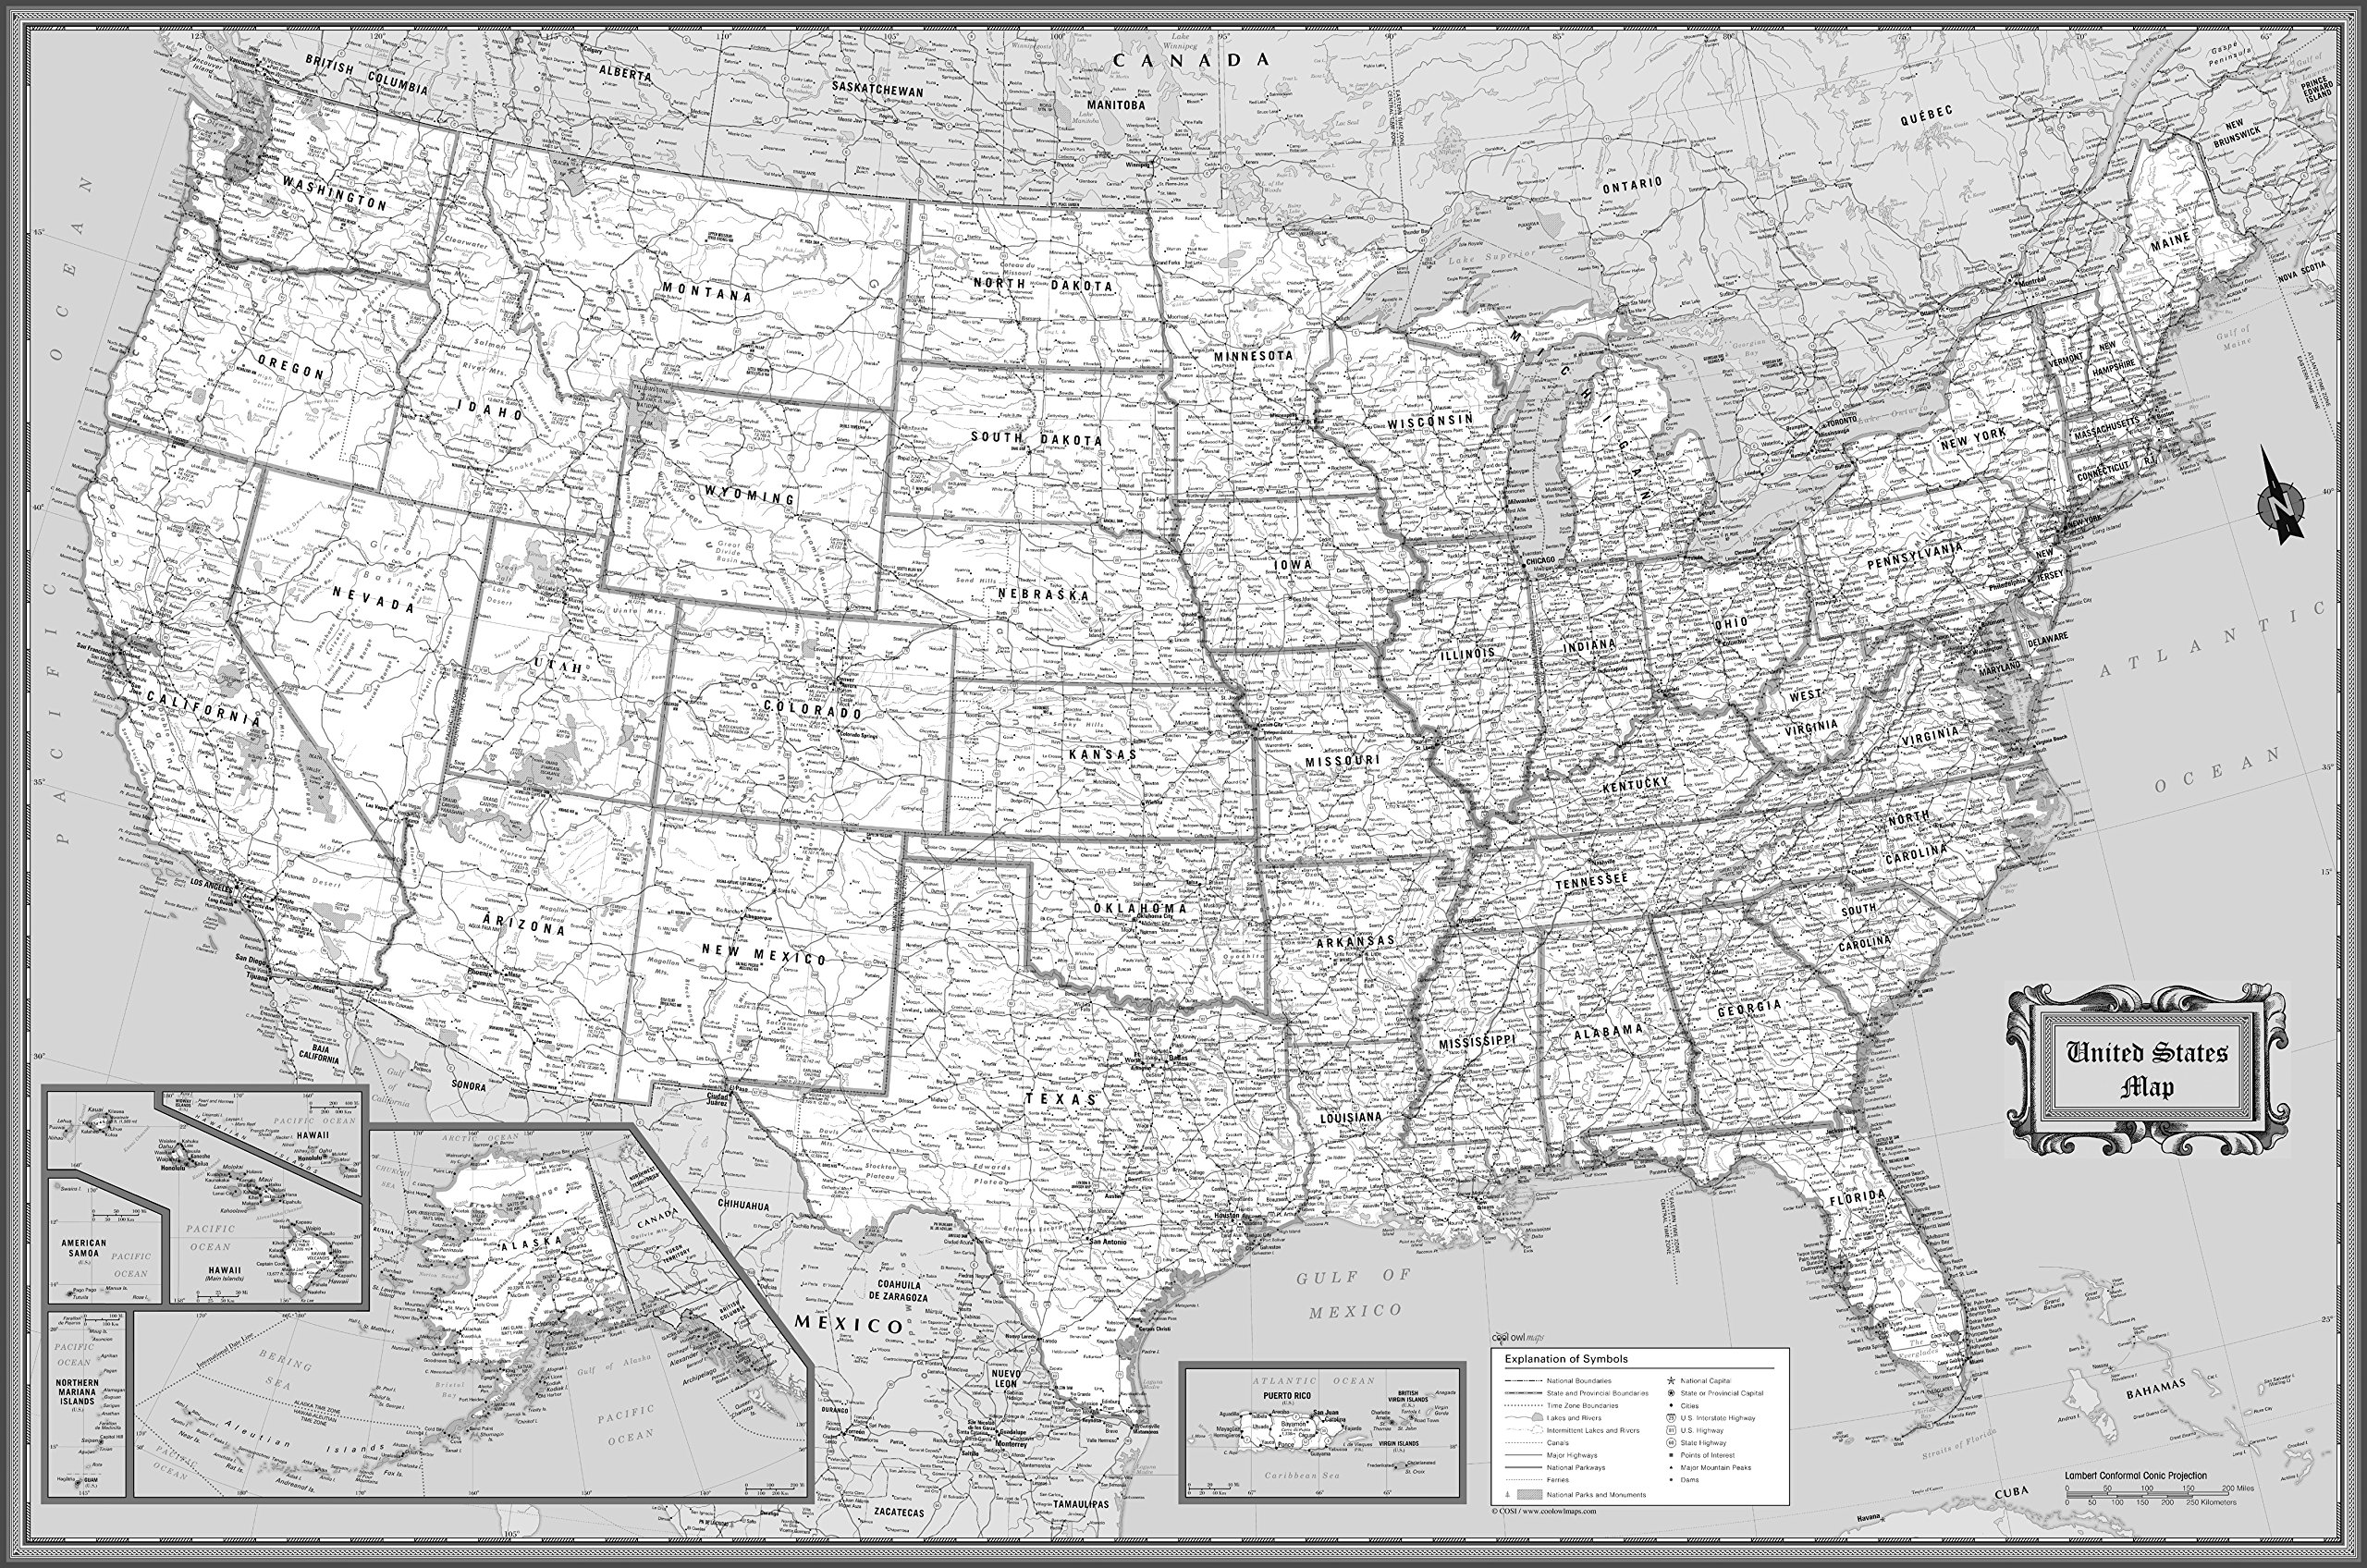 CoolOwlMaps United States Wall Map Black & White Design - Poster Size 36x24 Rolled Laminated